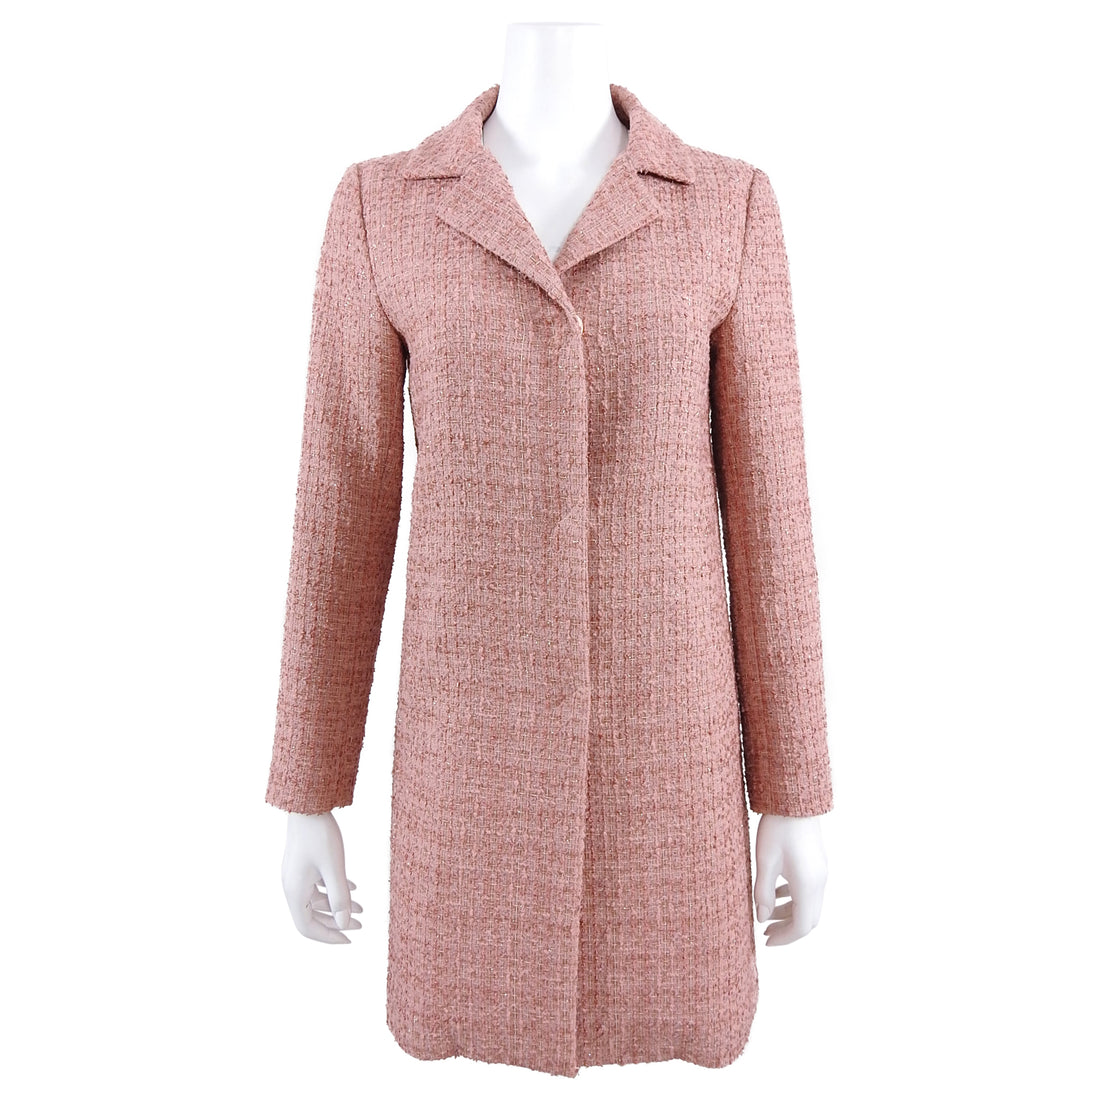 Herno Pink Quartz Tweed Spring Coat - IT42 / USA 6